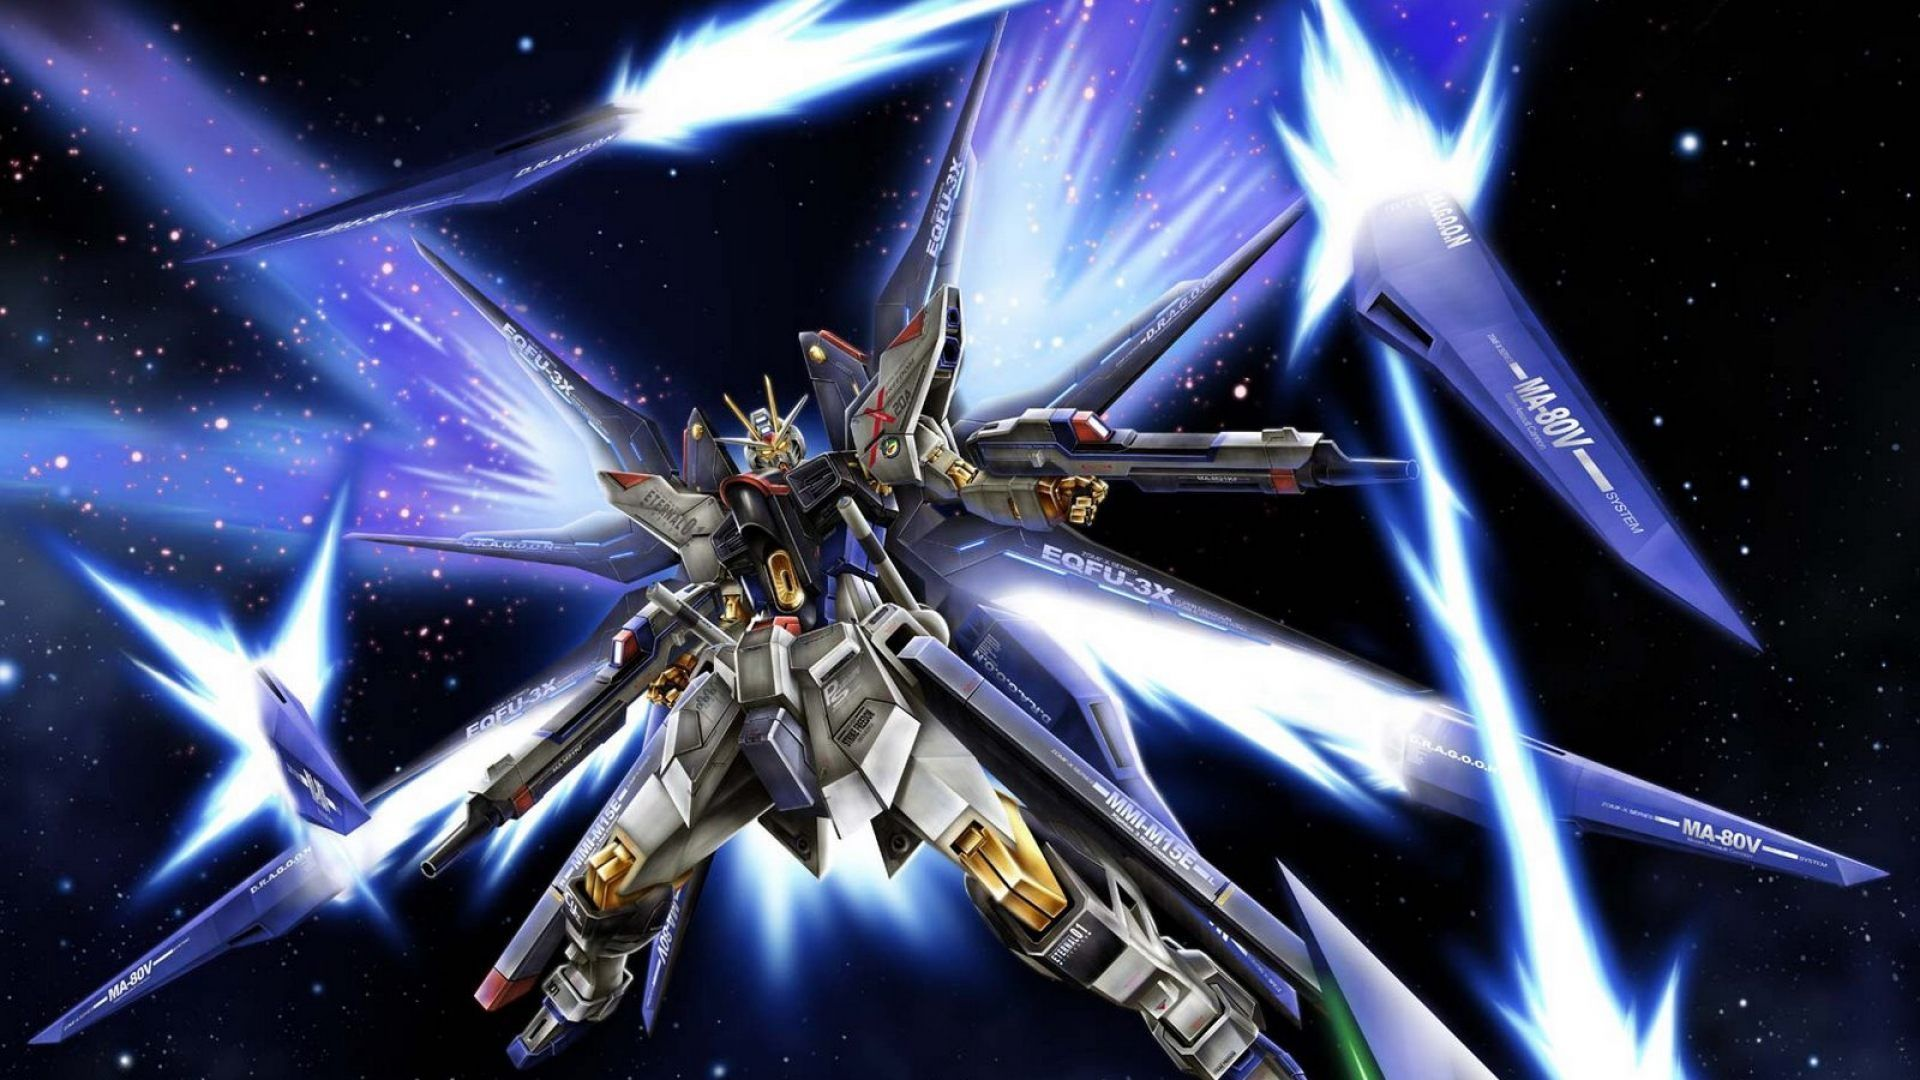 Gundam Seed Wallpapers Wallpaper Cave フリーダム ガンダム